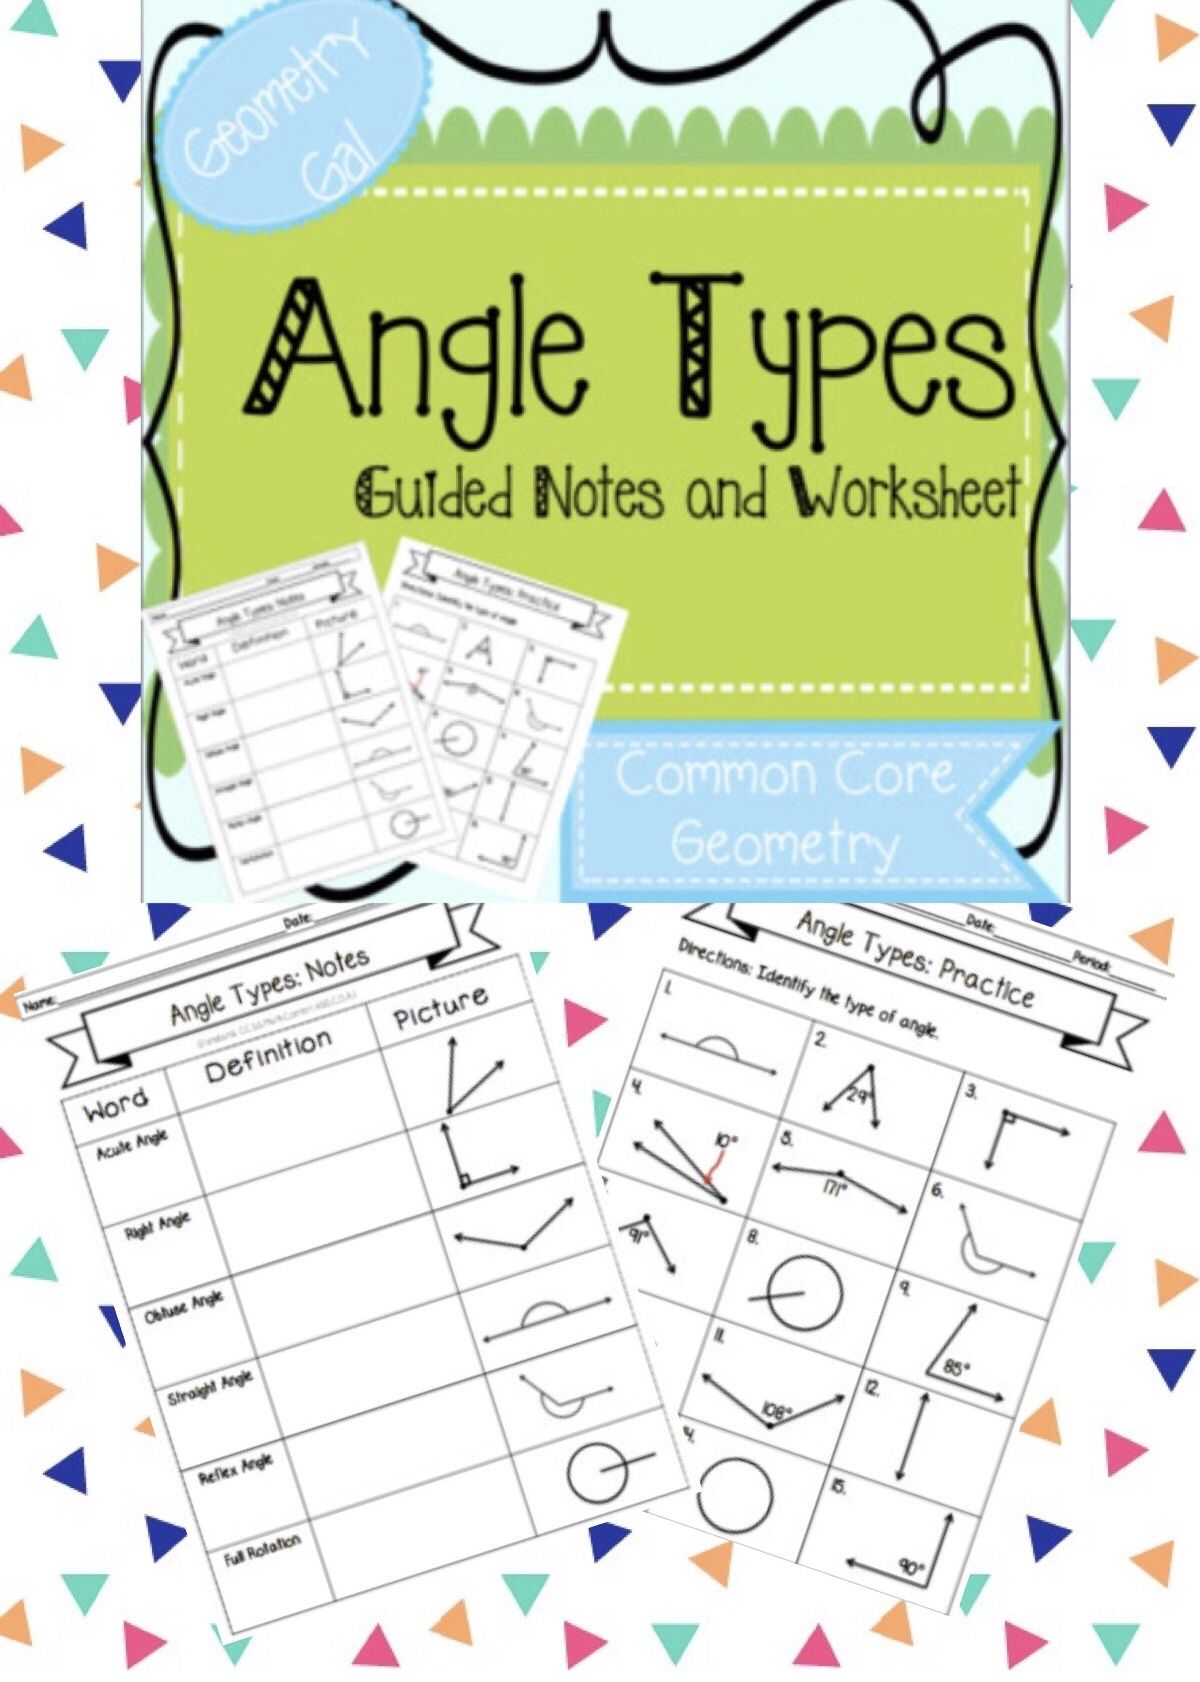 Angle Types Guided Notes And Worksheet